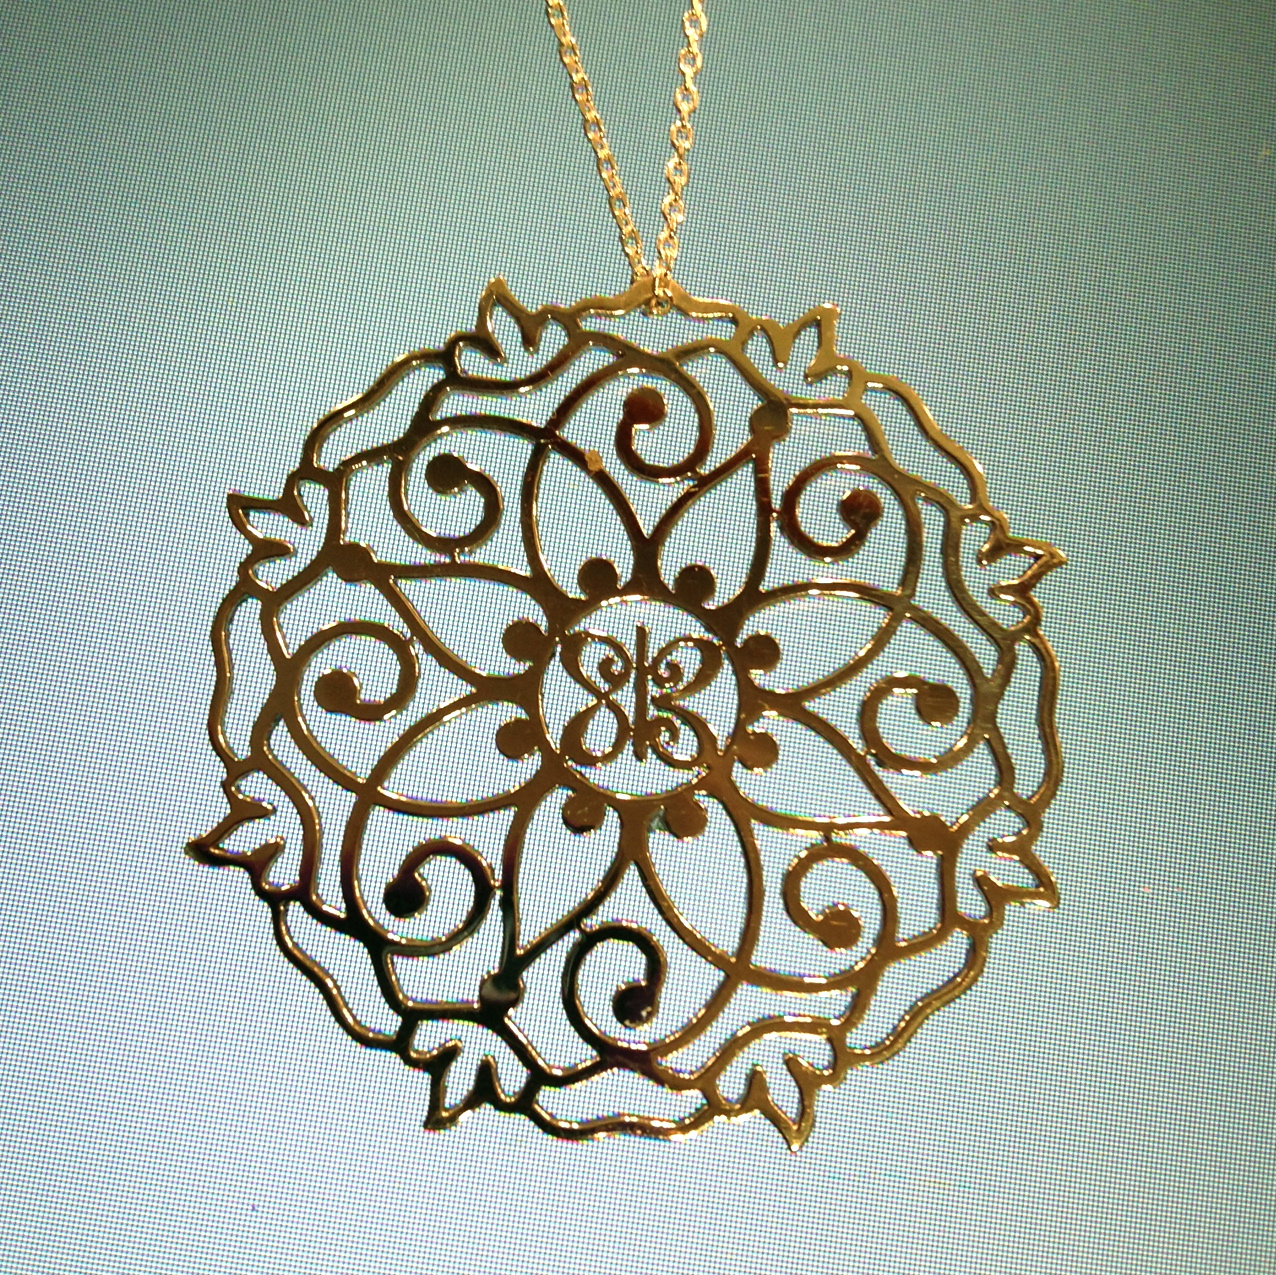 mandala necklace -33.jpg